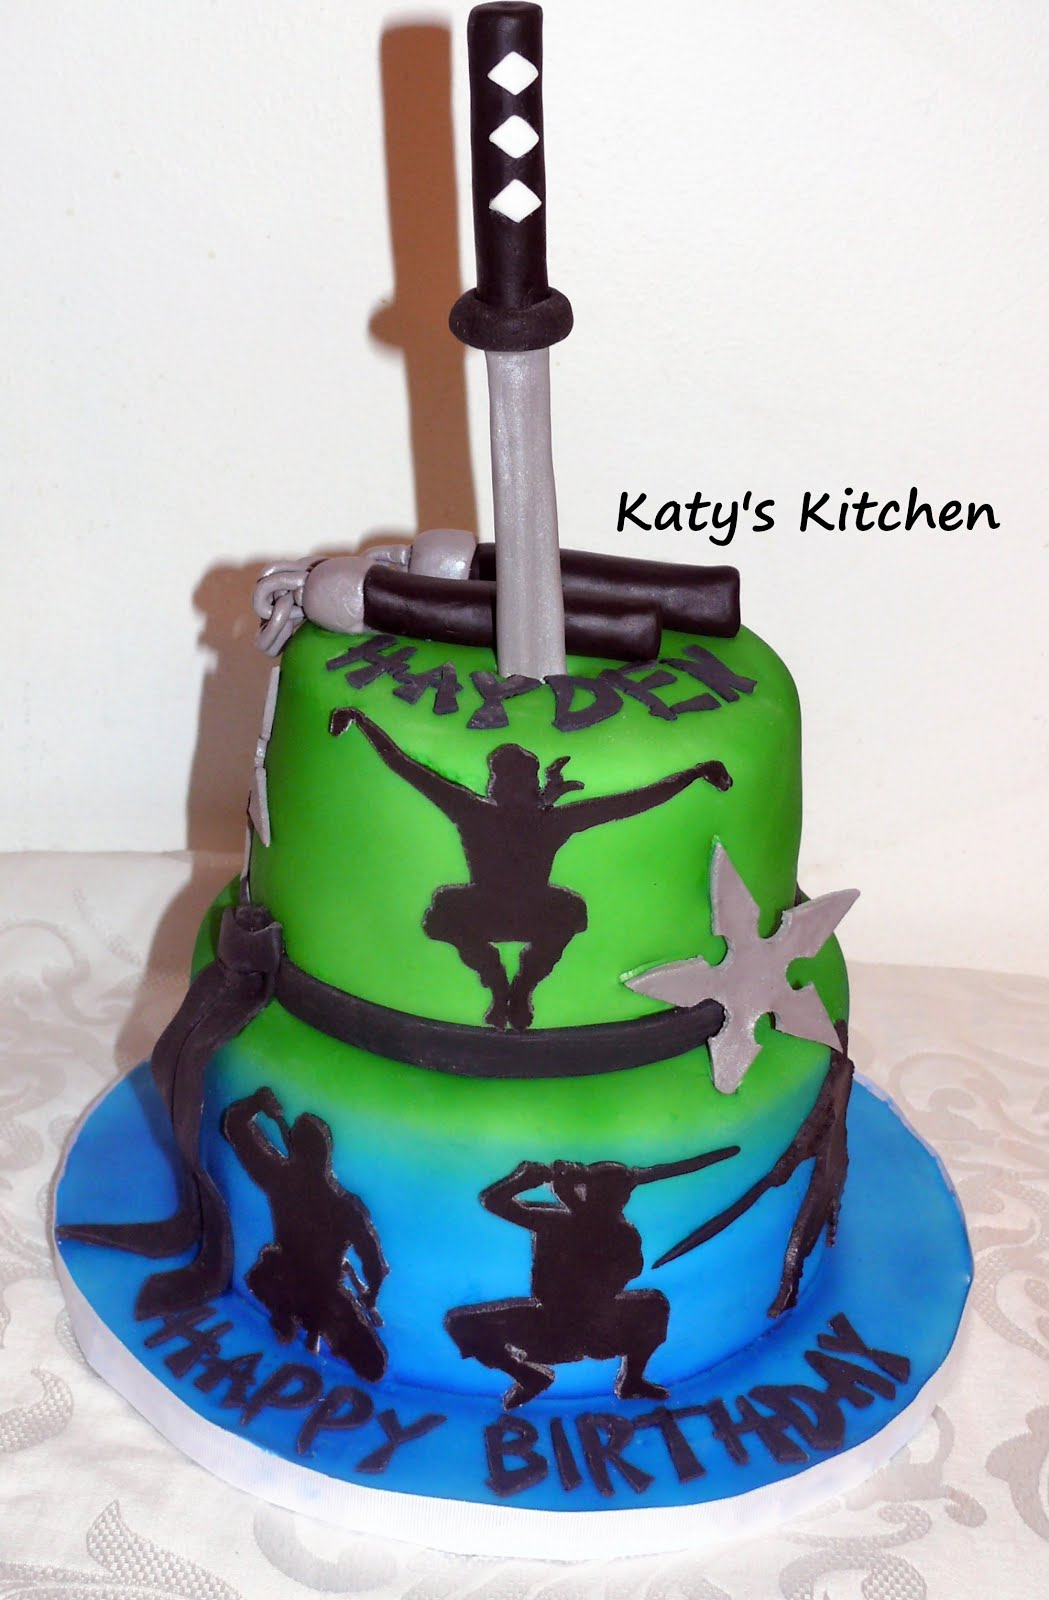 Katy's Kitchen: Ninja Birthday Cake